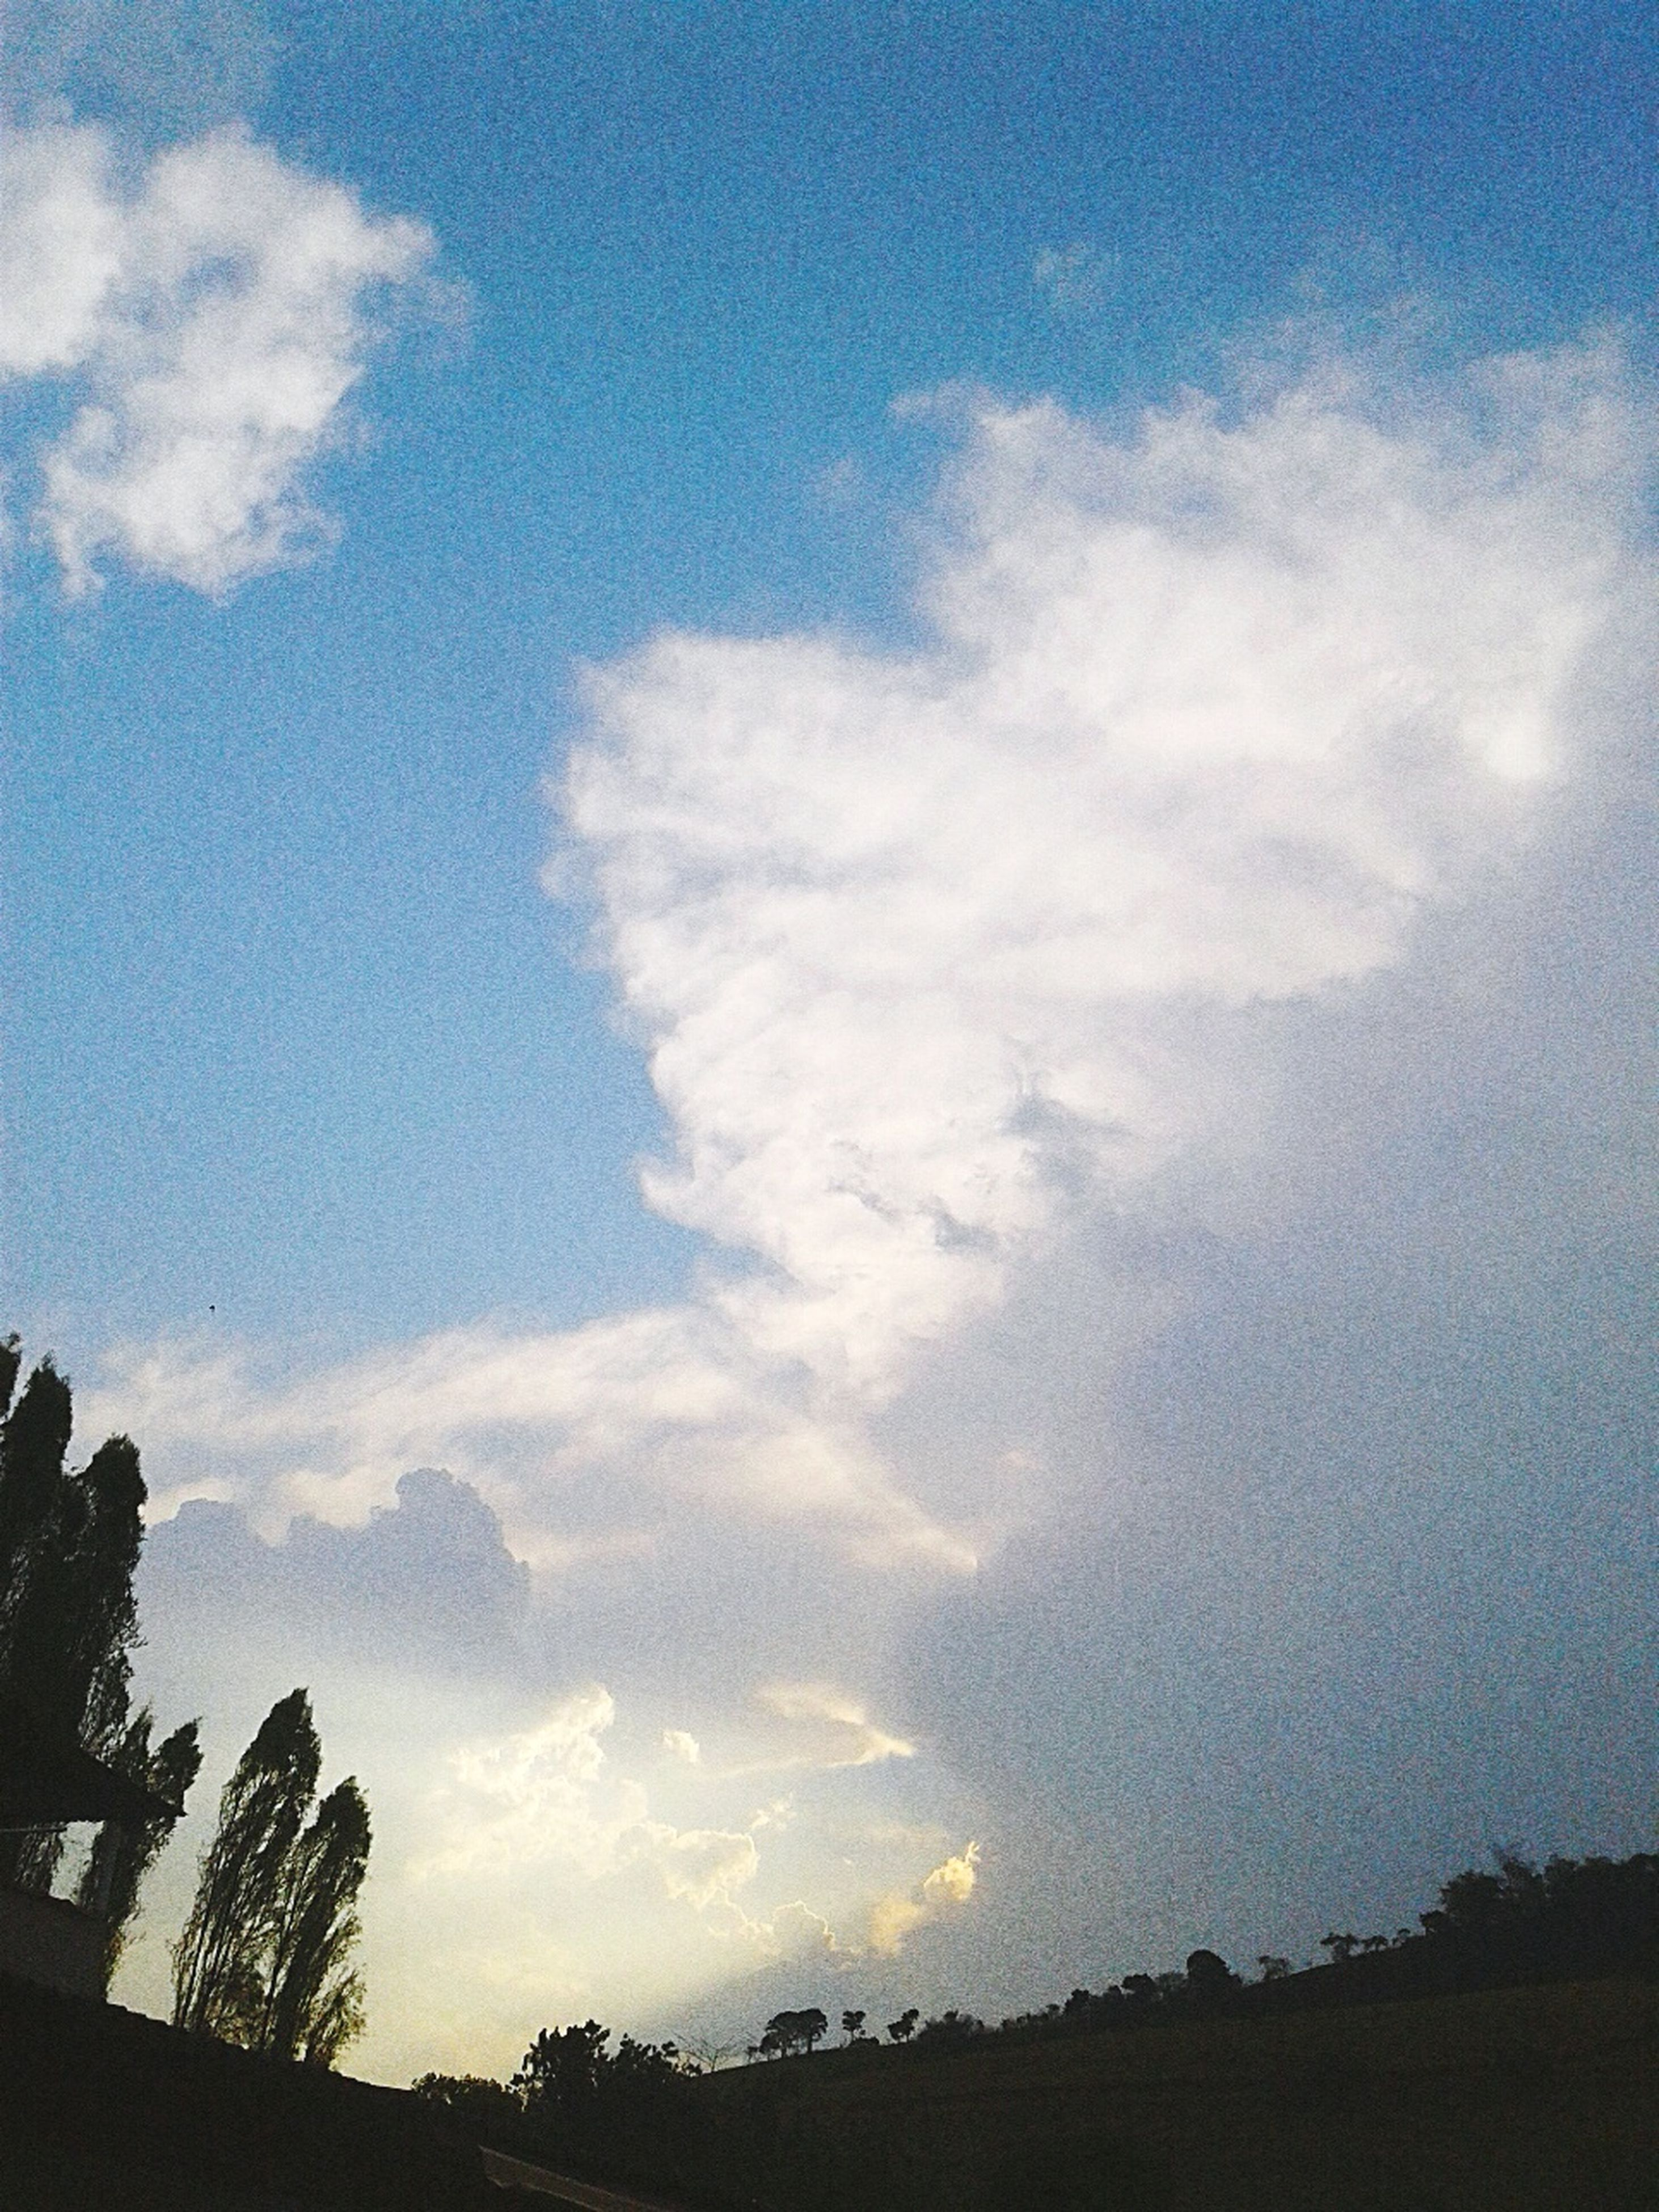 sky, tree, tranquil scene, tranquility, scenics, beauty in nature, cloud, cloud - sky, nature, blue, outdoors, day, growth, majestic, cloudscape, no people, cloudy, solitude, non-urban scene, cumulus cloud, outline